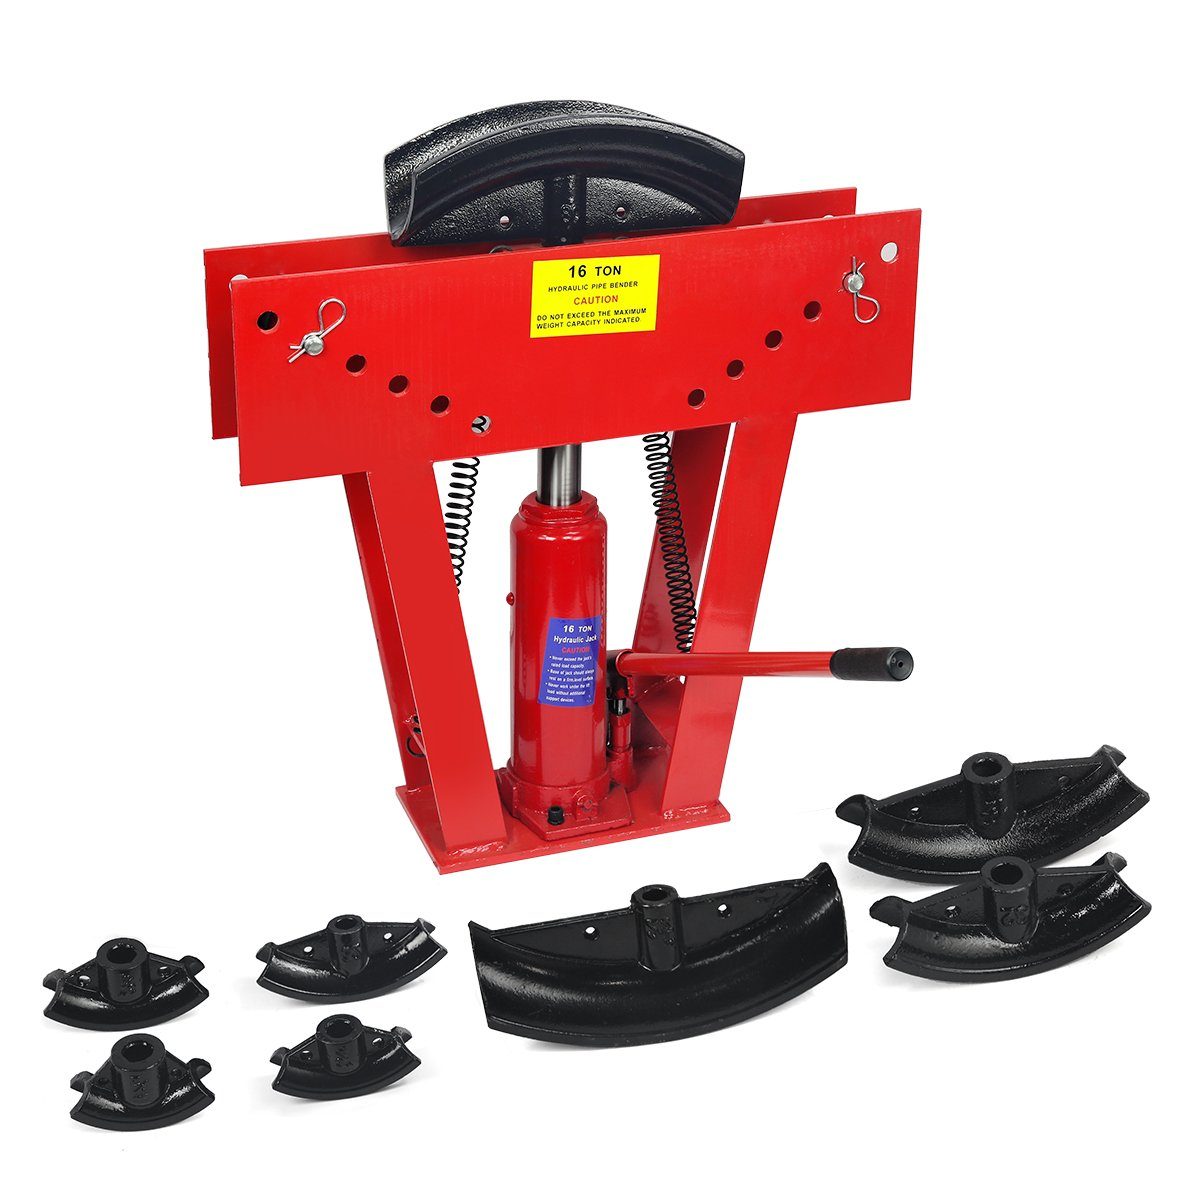 XtremepowerUS Heavy Duty 16 Ton Hydraulic Manual Pipe Bender W/ 8 Dies by XtremepowerUS